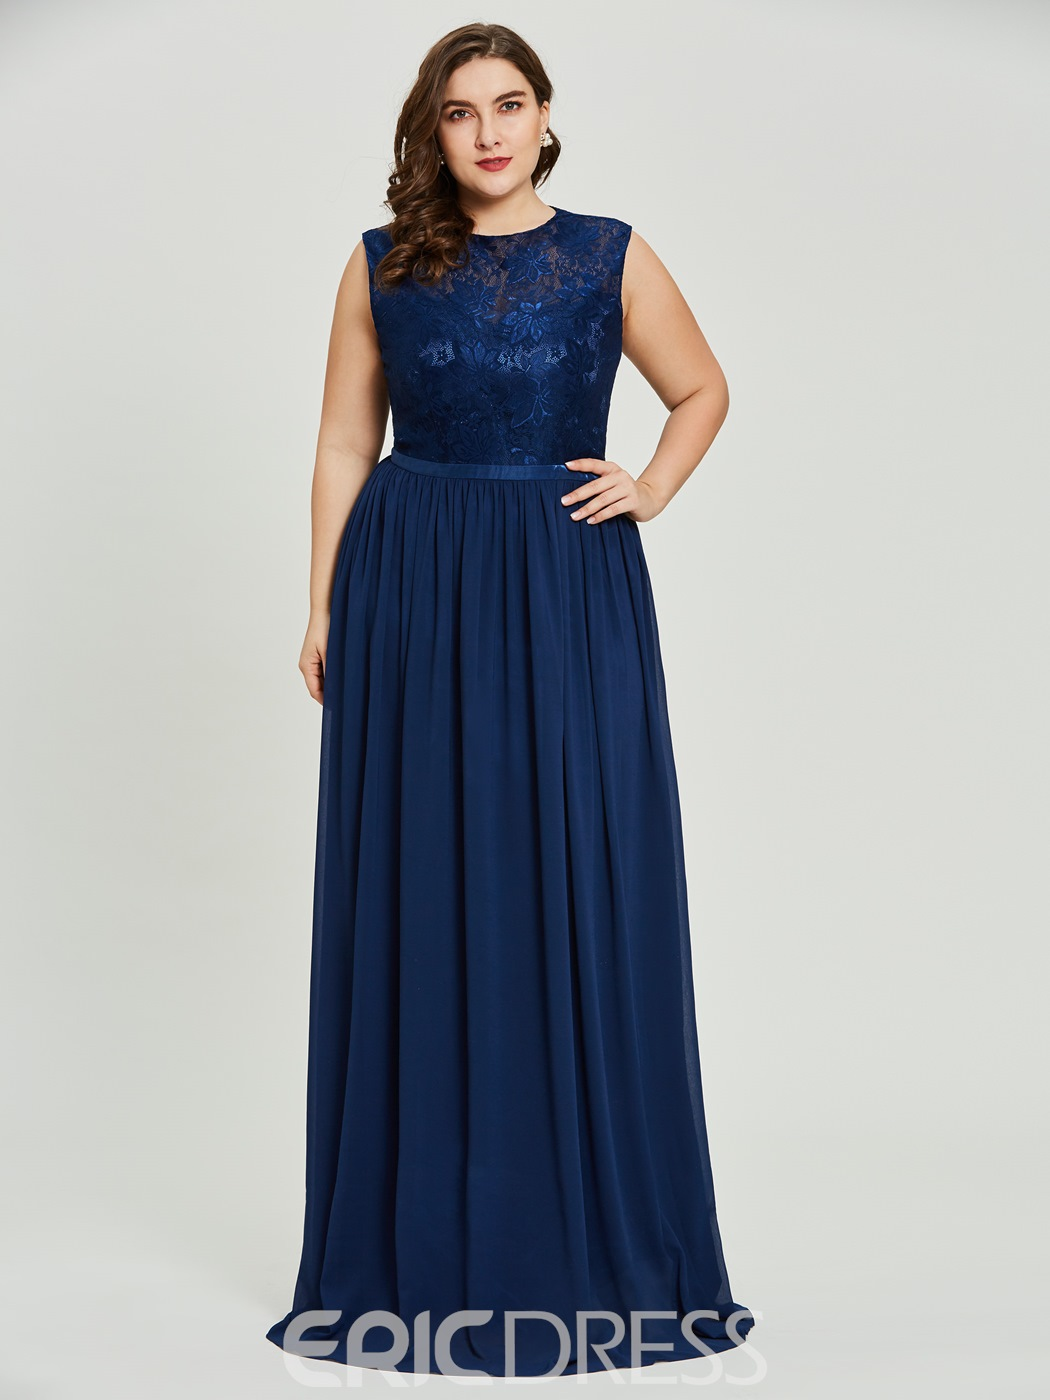 Ericdress Plus Size Scoop Neck A Line Prom Dress